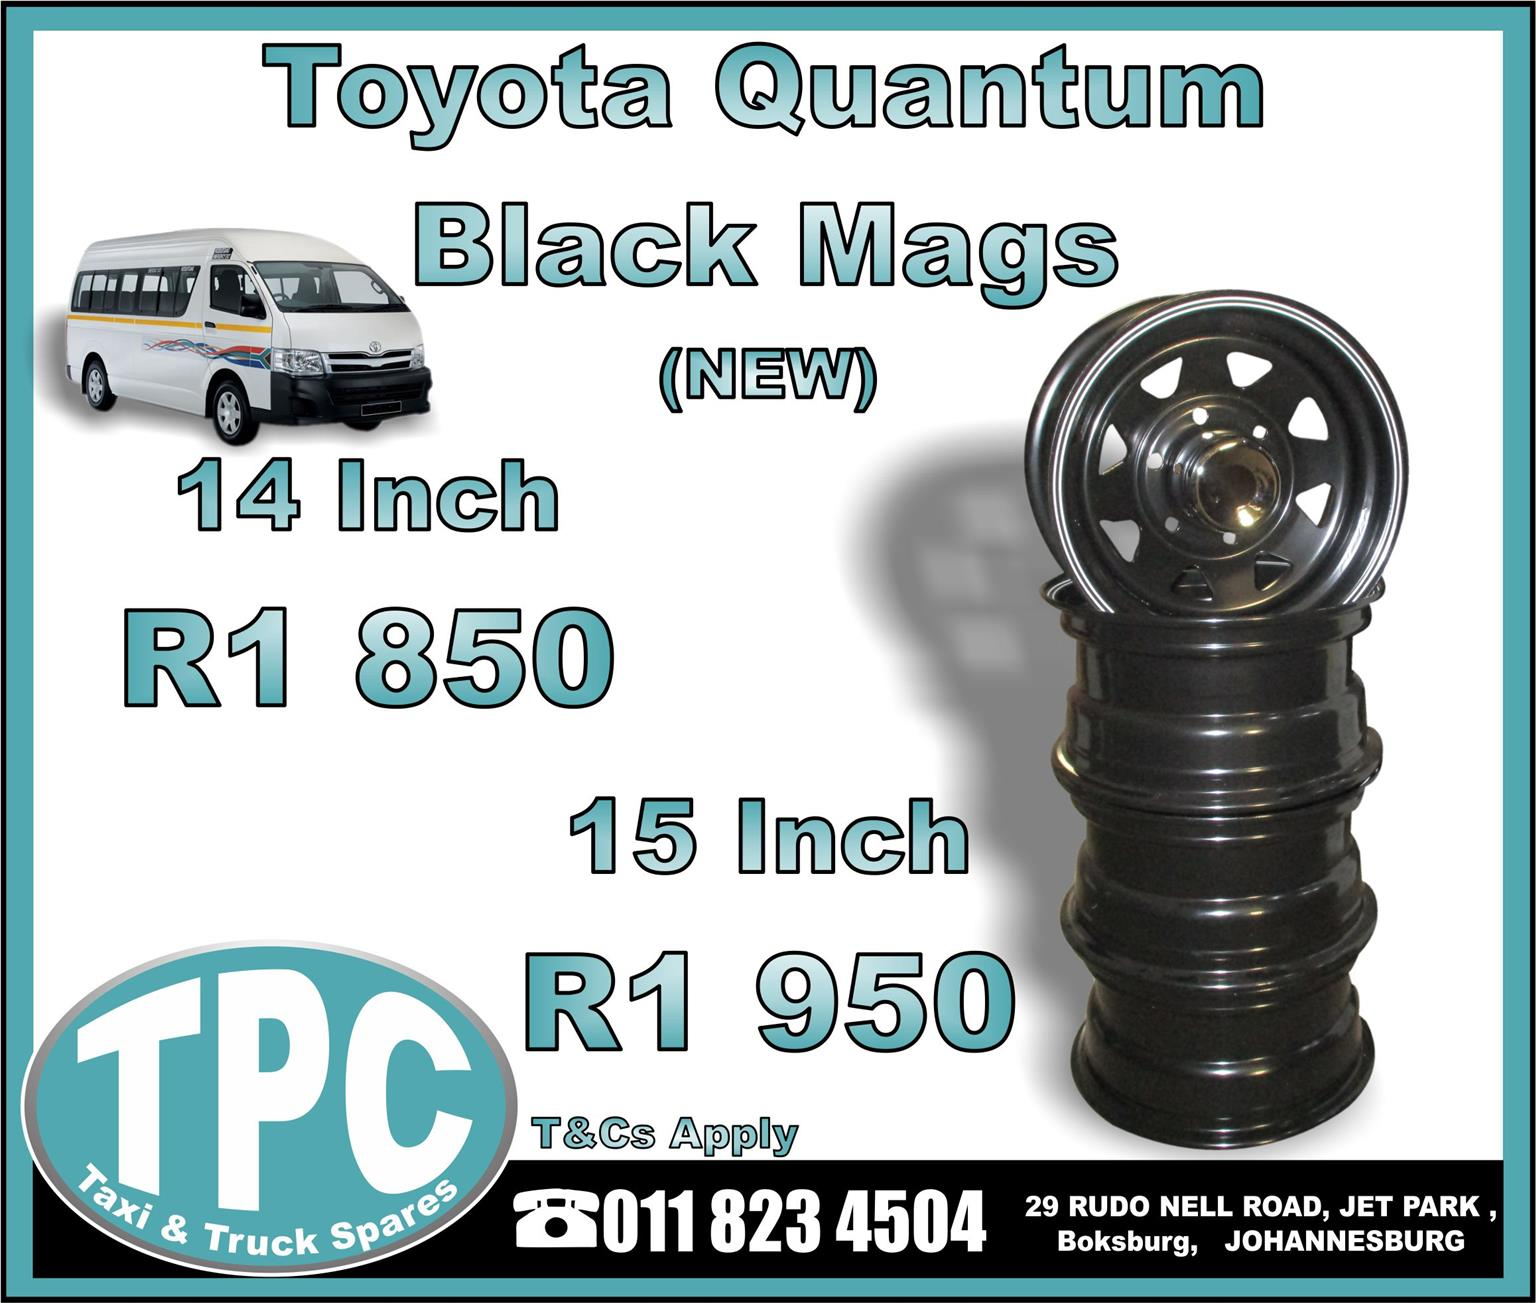 Toyota Quantum Black Mags 14/15 Inch - NEW - New And Used Replacement Taxi Parts - TPC.